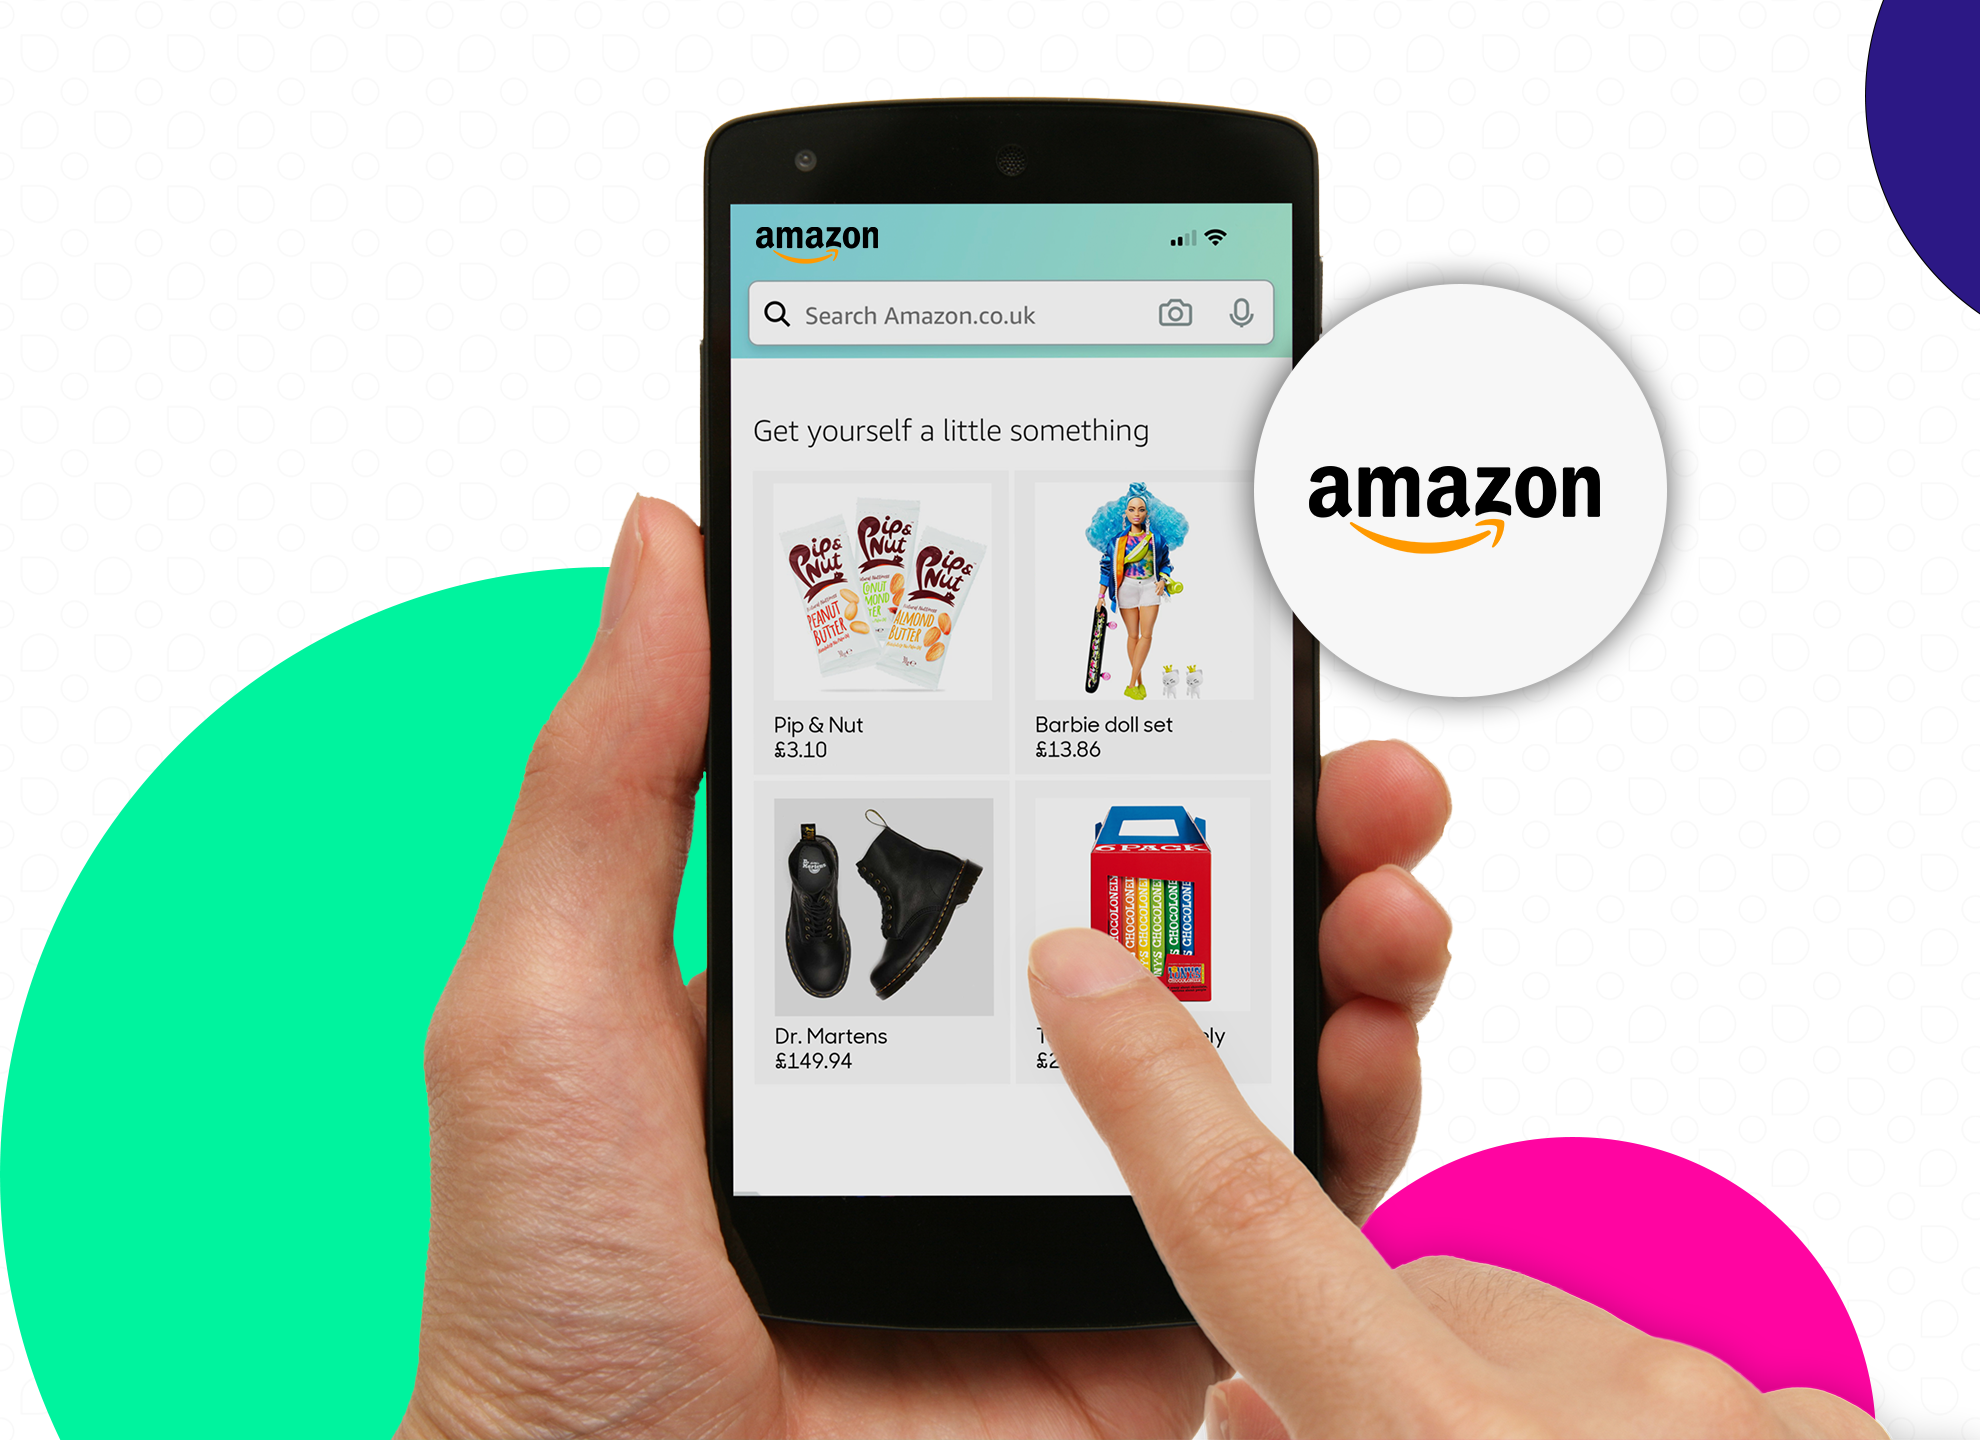 amazon webpage, someone browsing for brands